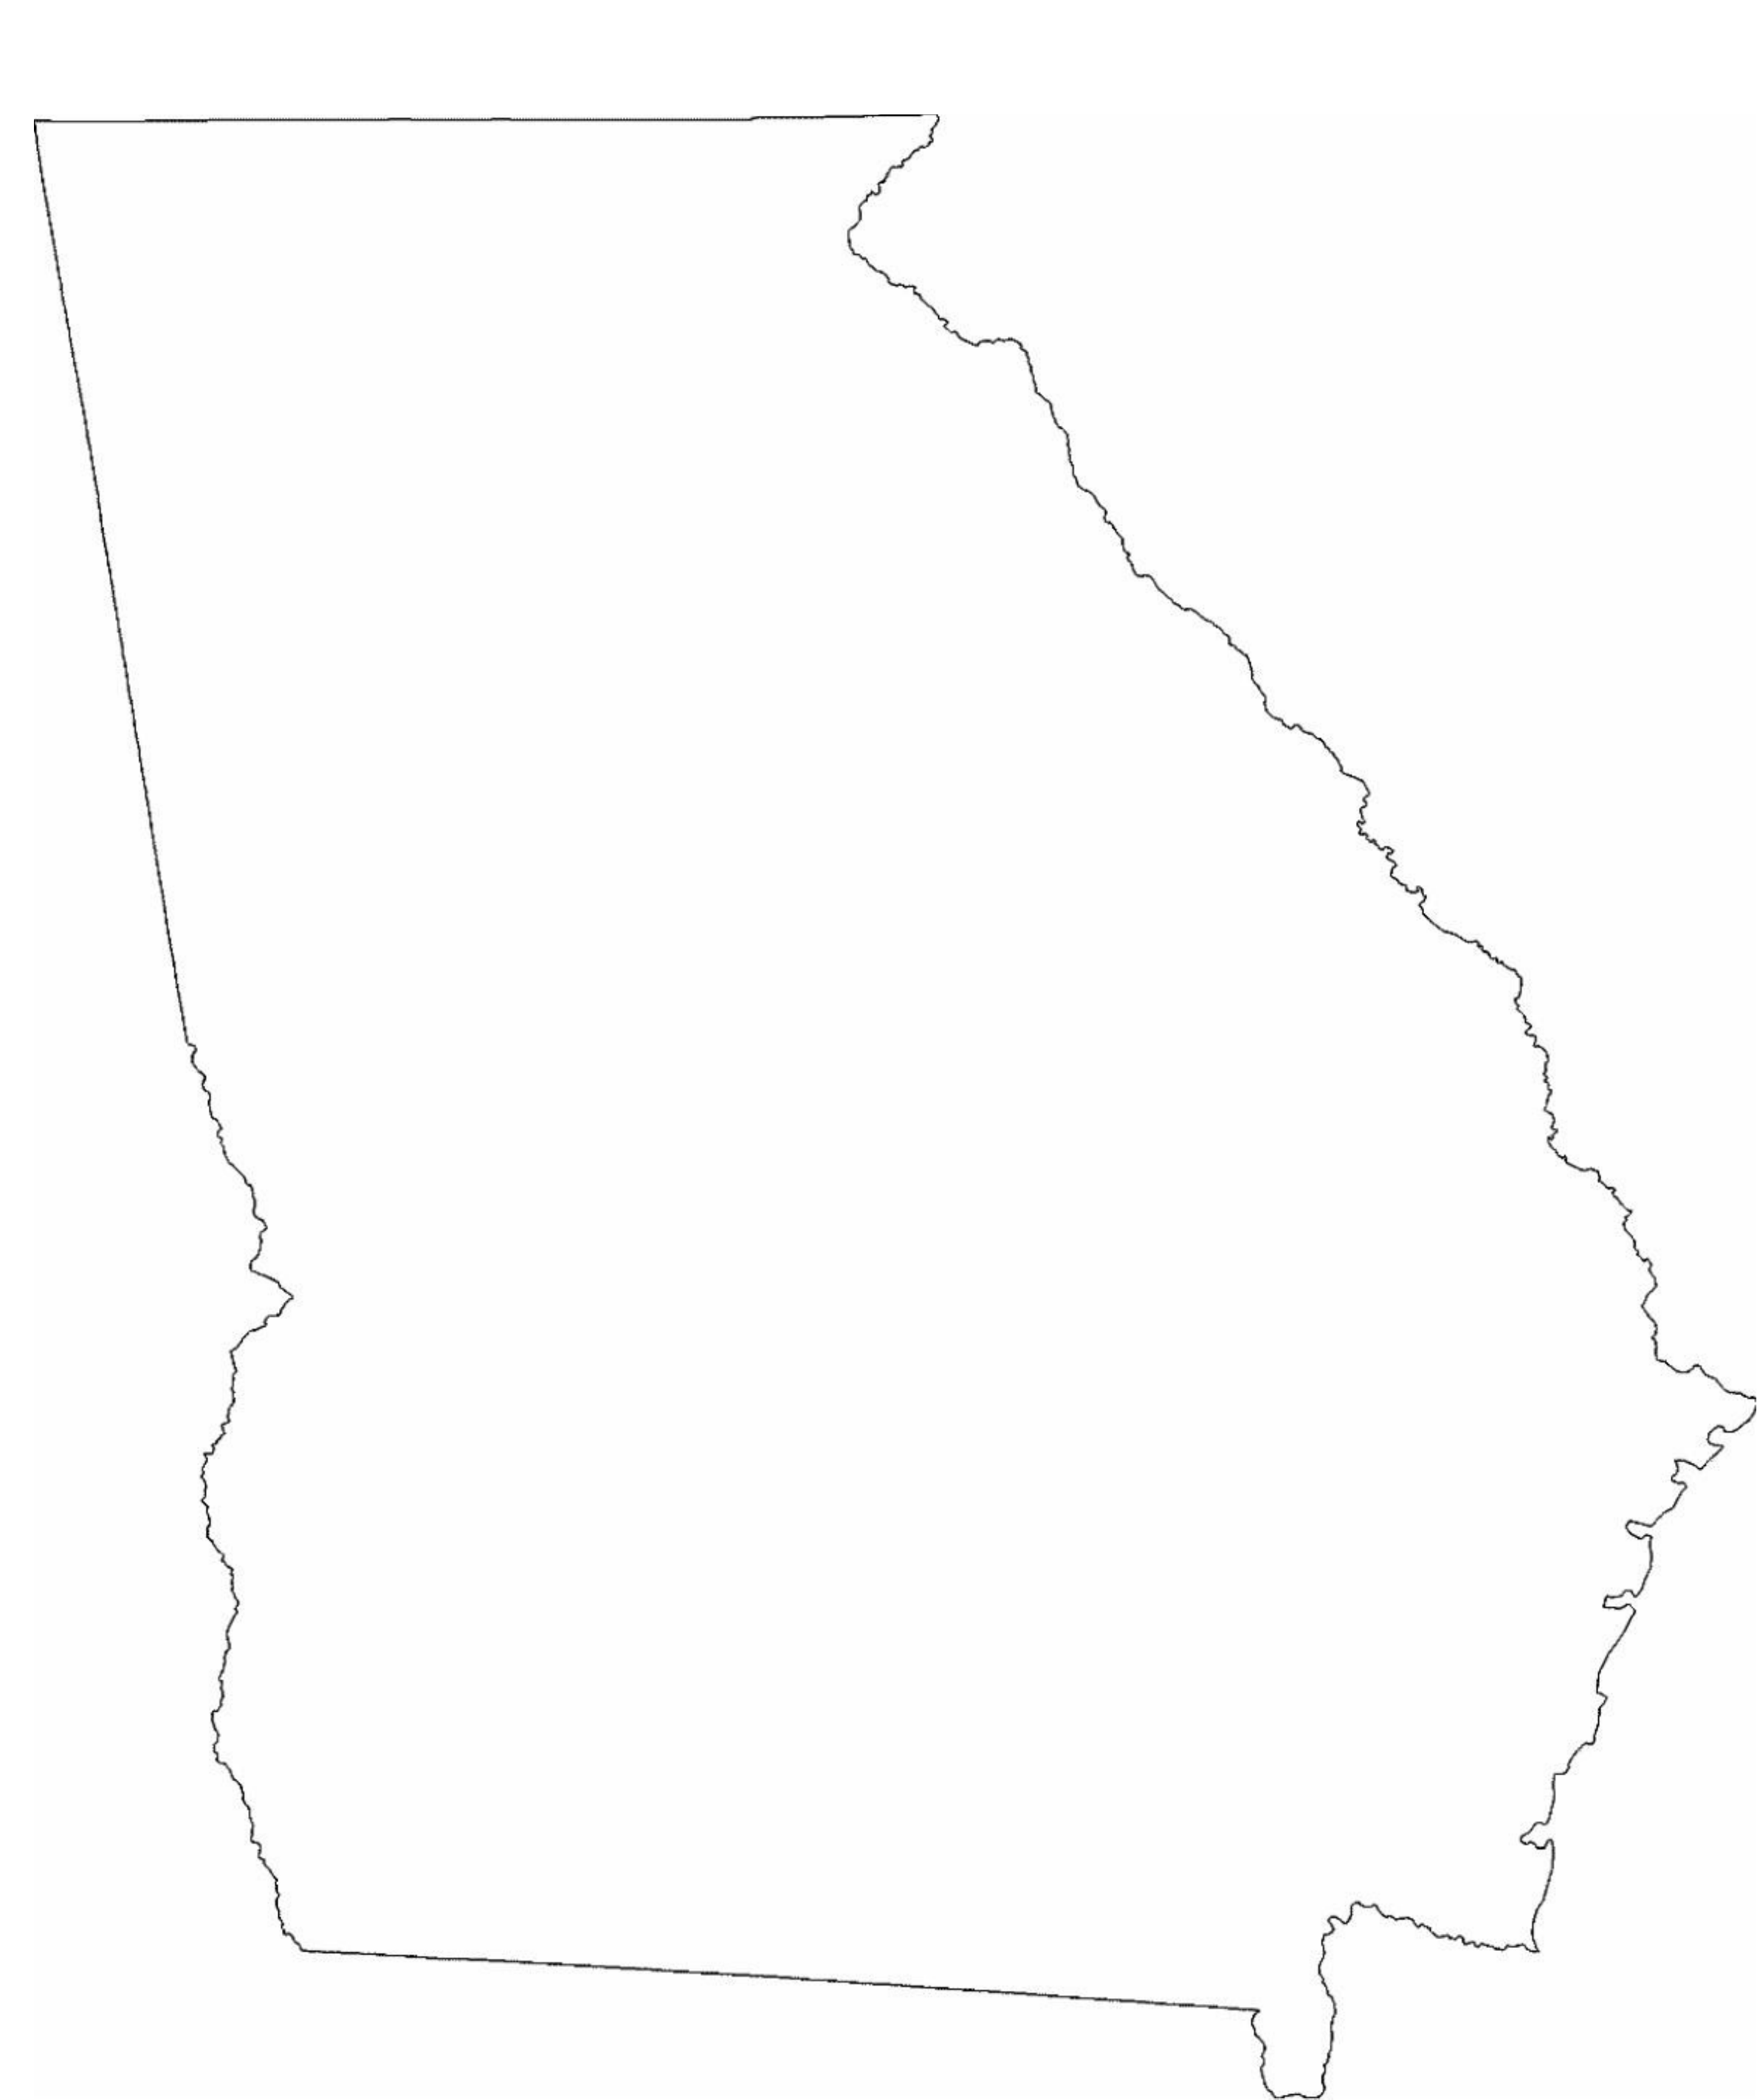 Georgia State Outline Map Free Download - Georgia map template